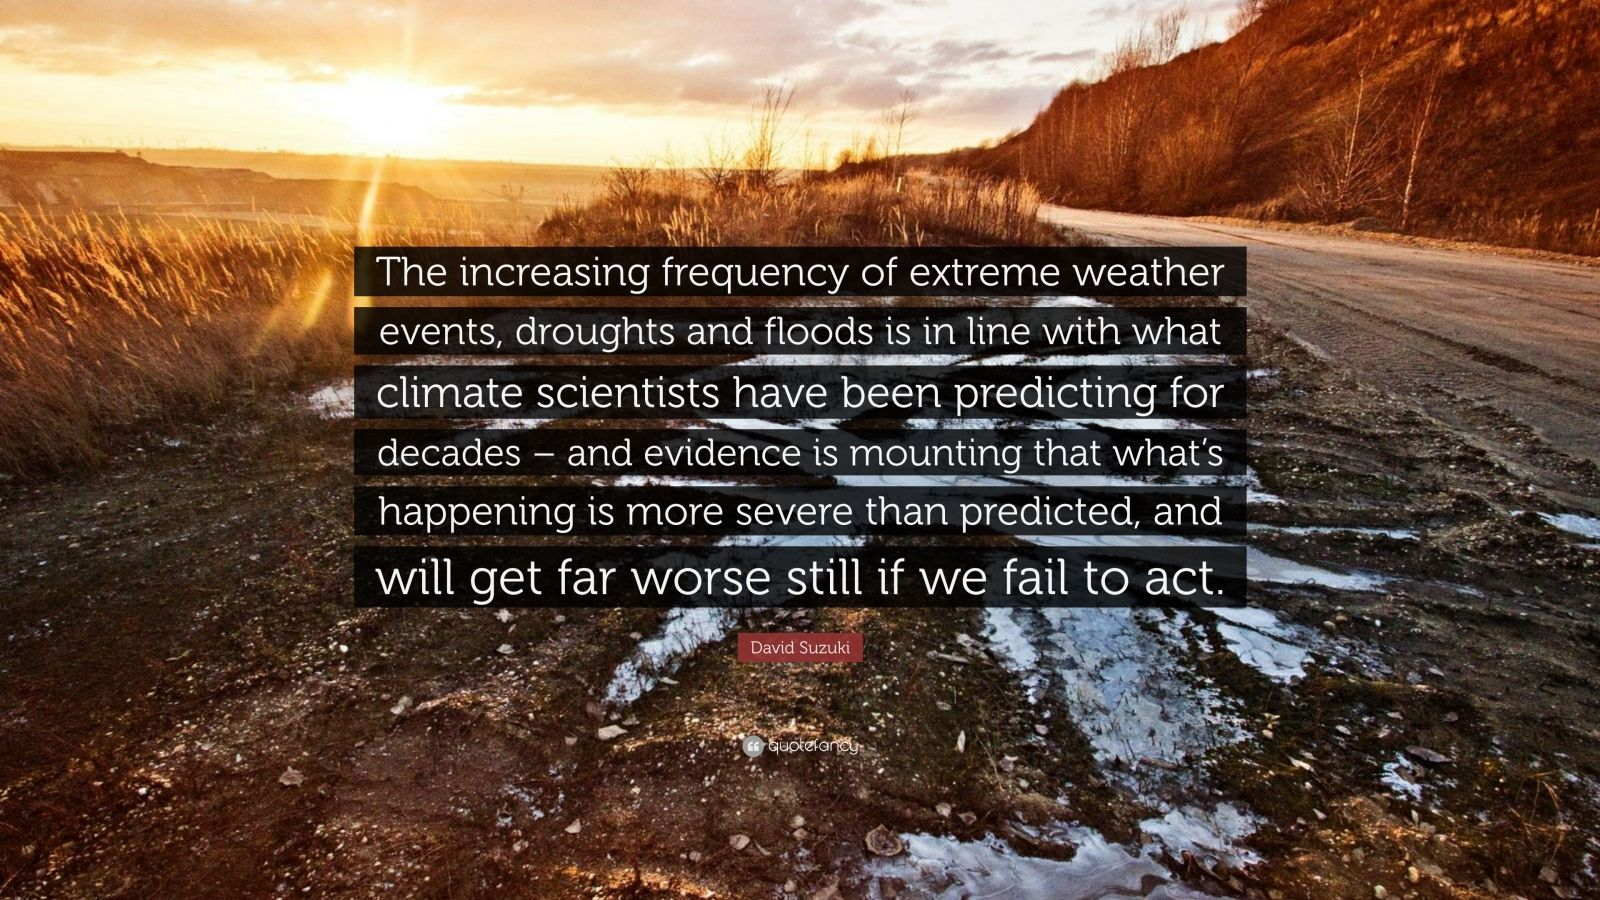 """David Suzuki Quote: """"The increasing frequency of extreme weather events, droughts and floods is in line with what climate scientists have been predicting for decades – and evidence is mounting that what's happening is more severe than predicted, and will get far worse still if we fail to act."""""""